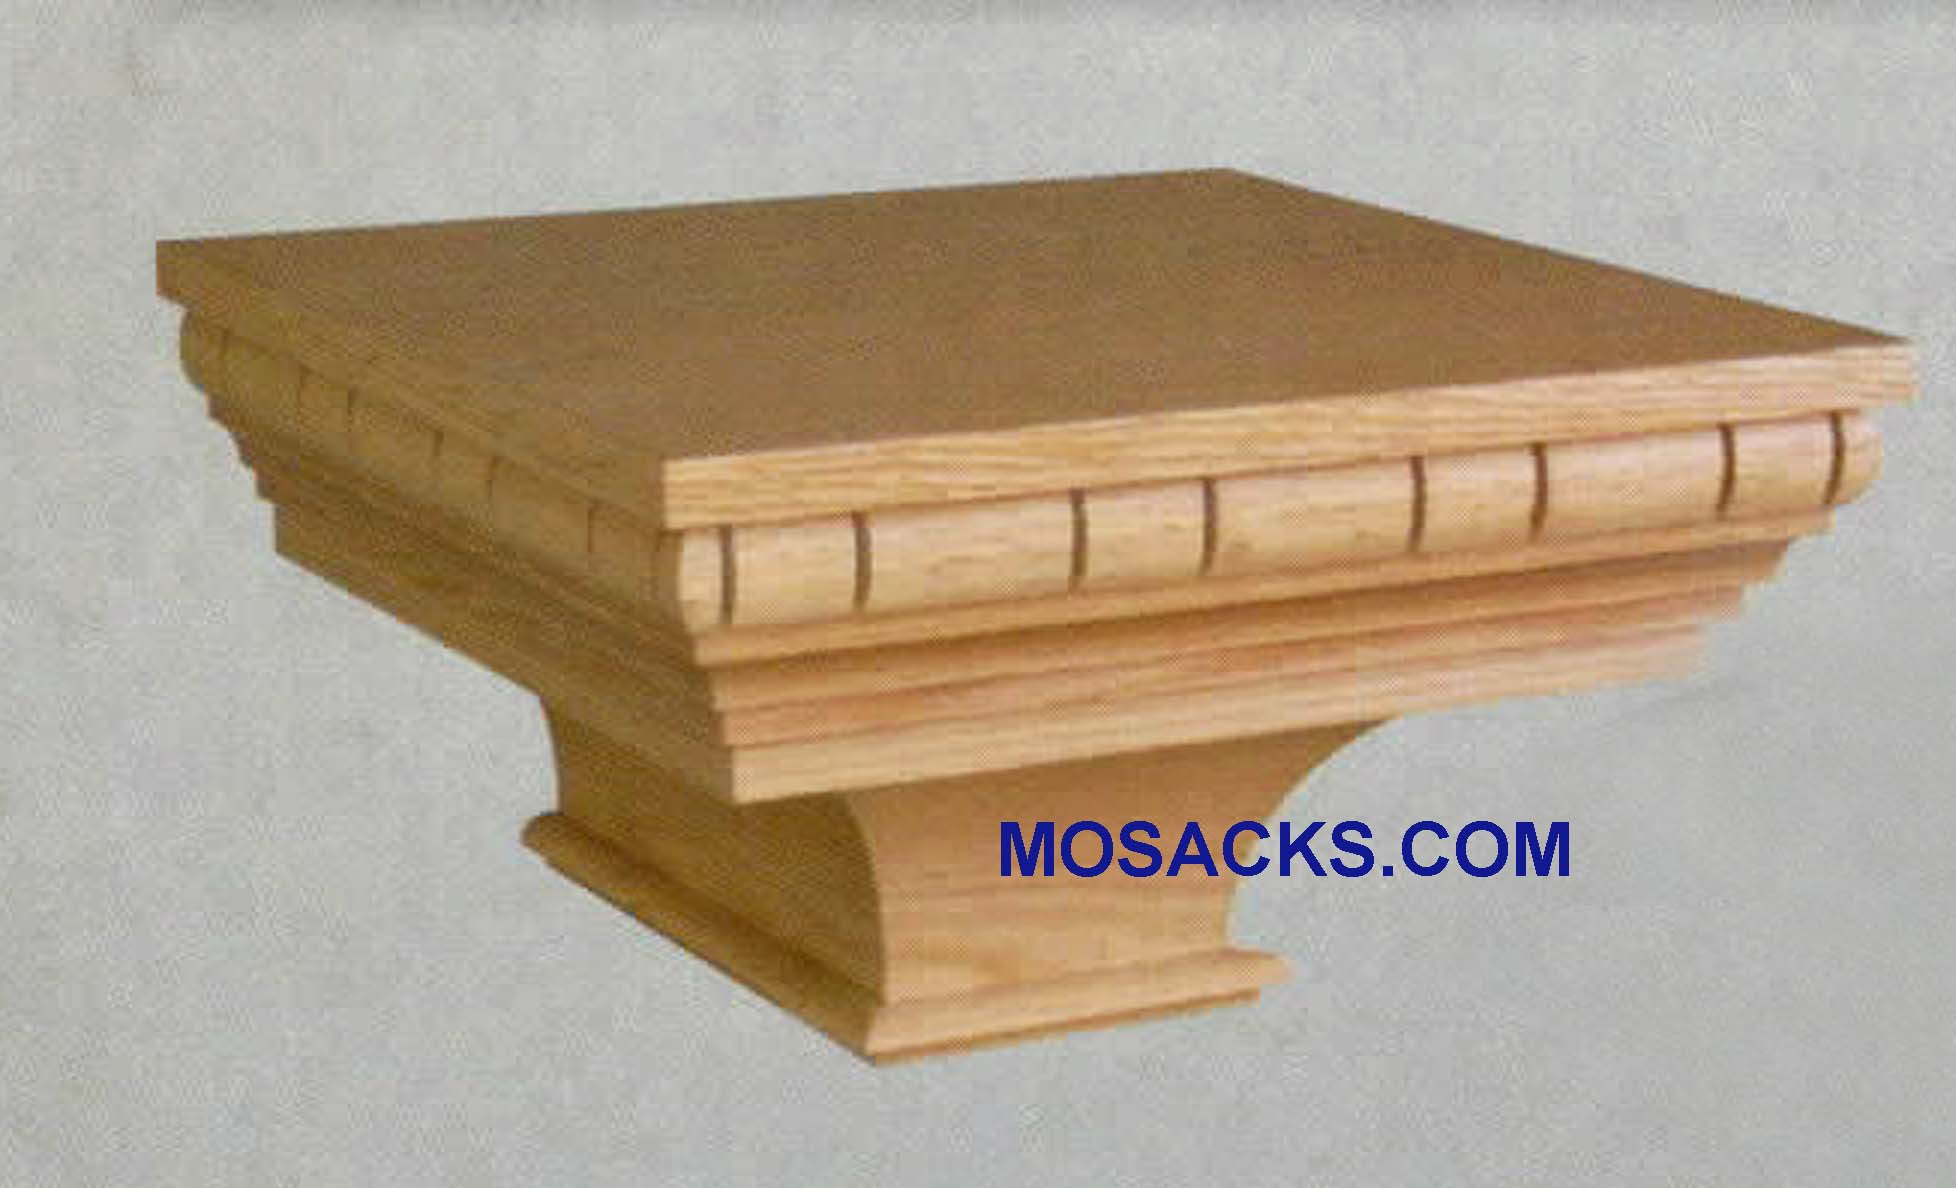 "Wooden Wall Mount Pedestal 12""w x 11""d, 9""h #425 W Brand Church Furniture at Mosack's"